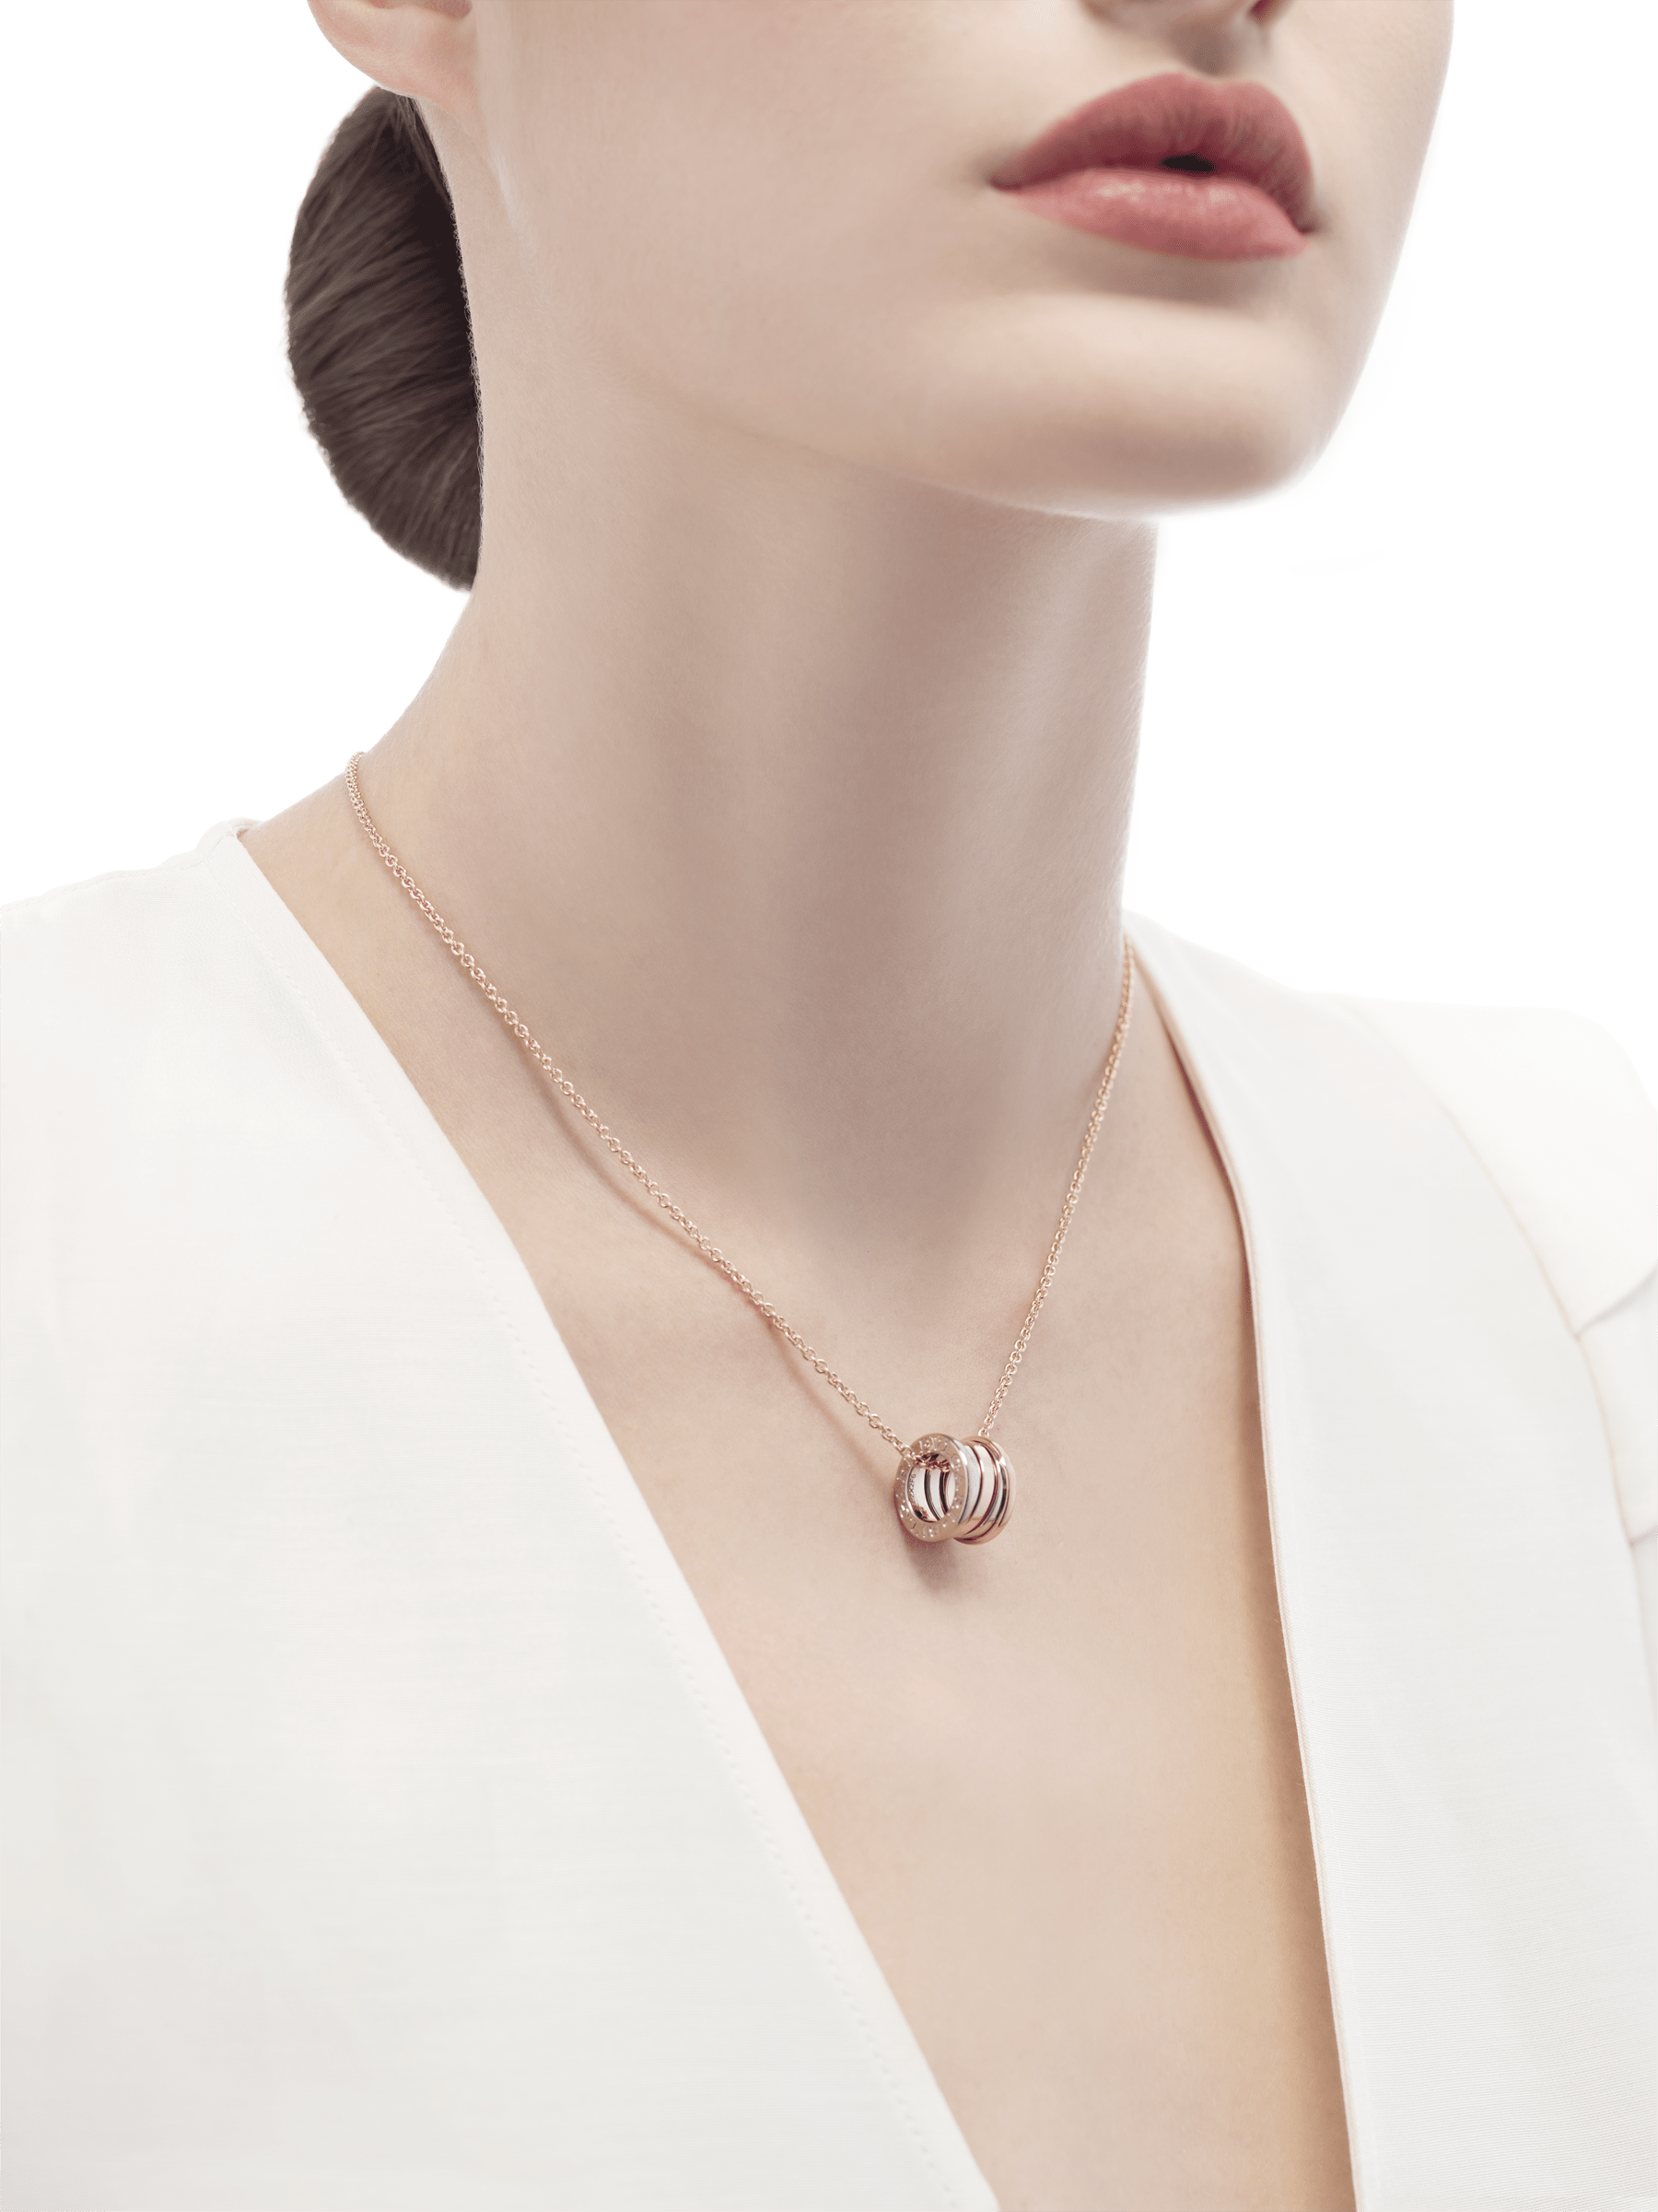 B.zero1 necklace with 18 kt rose and white gold pendant, 18 kt rose gold chain. 354903 image 4